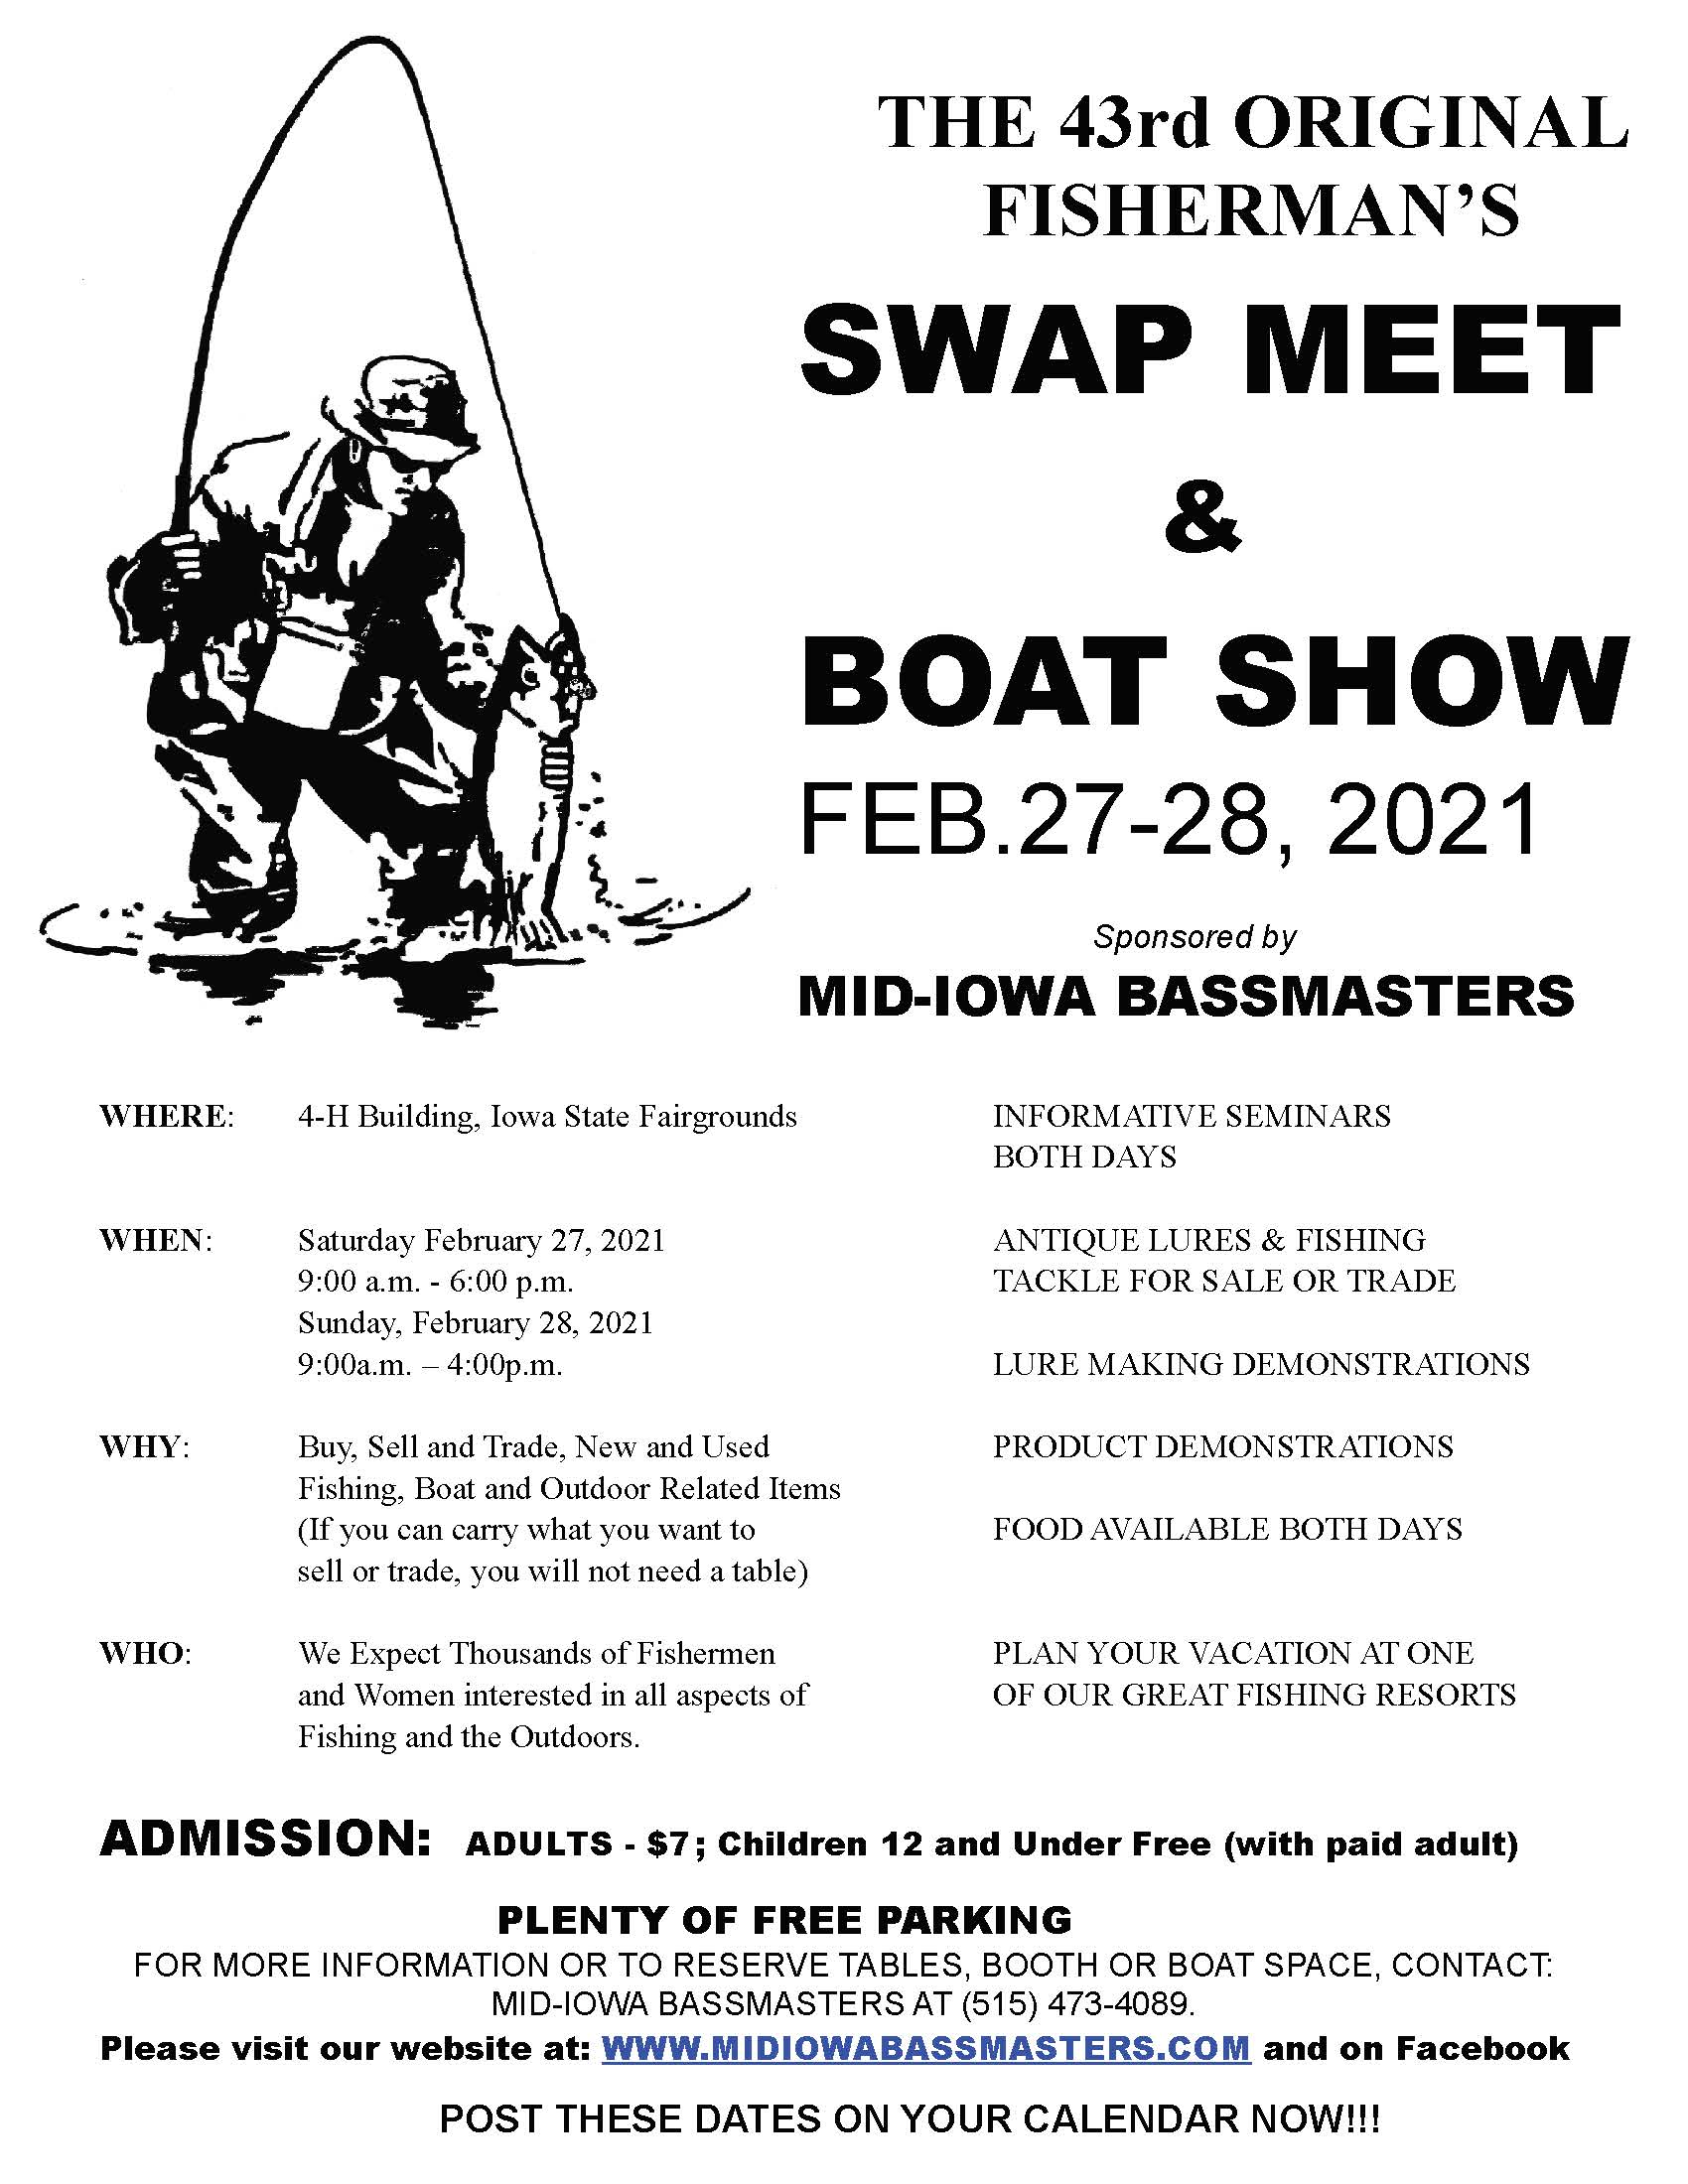 The 2021 Swap Meet will be held on February 27